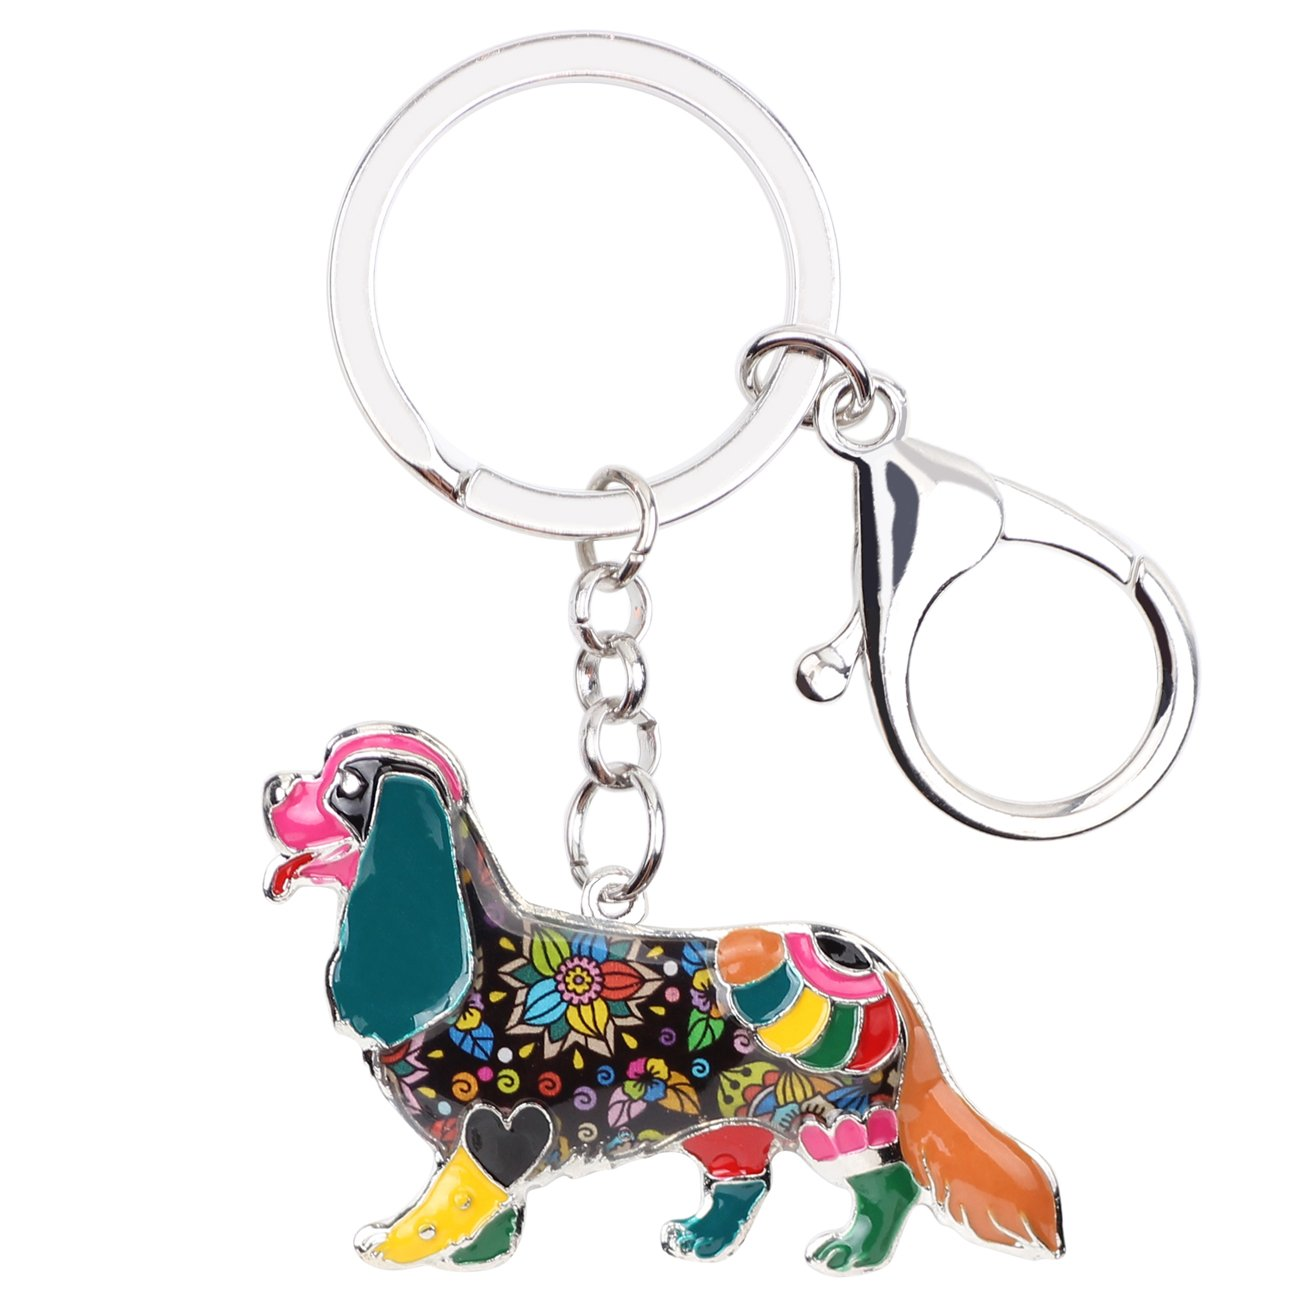 Enamel Alloy Chain Cavalier King Charles Spaniel Dog Key Chains For Women Girl Car Purse bag Charms Gift (Multicoloured)